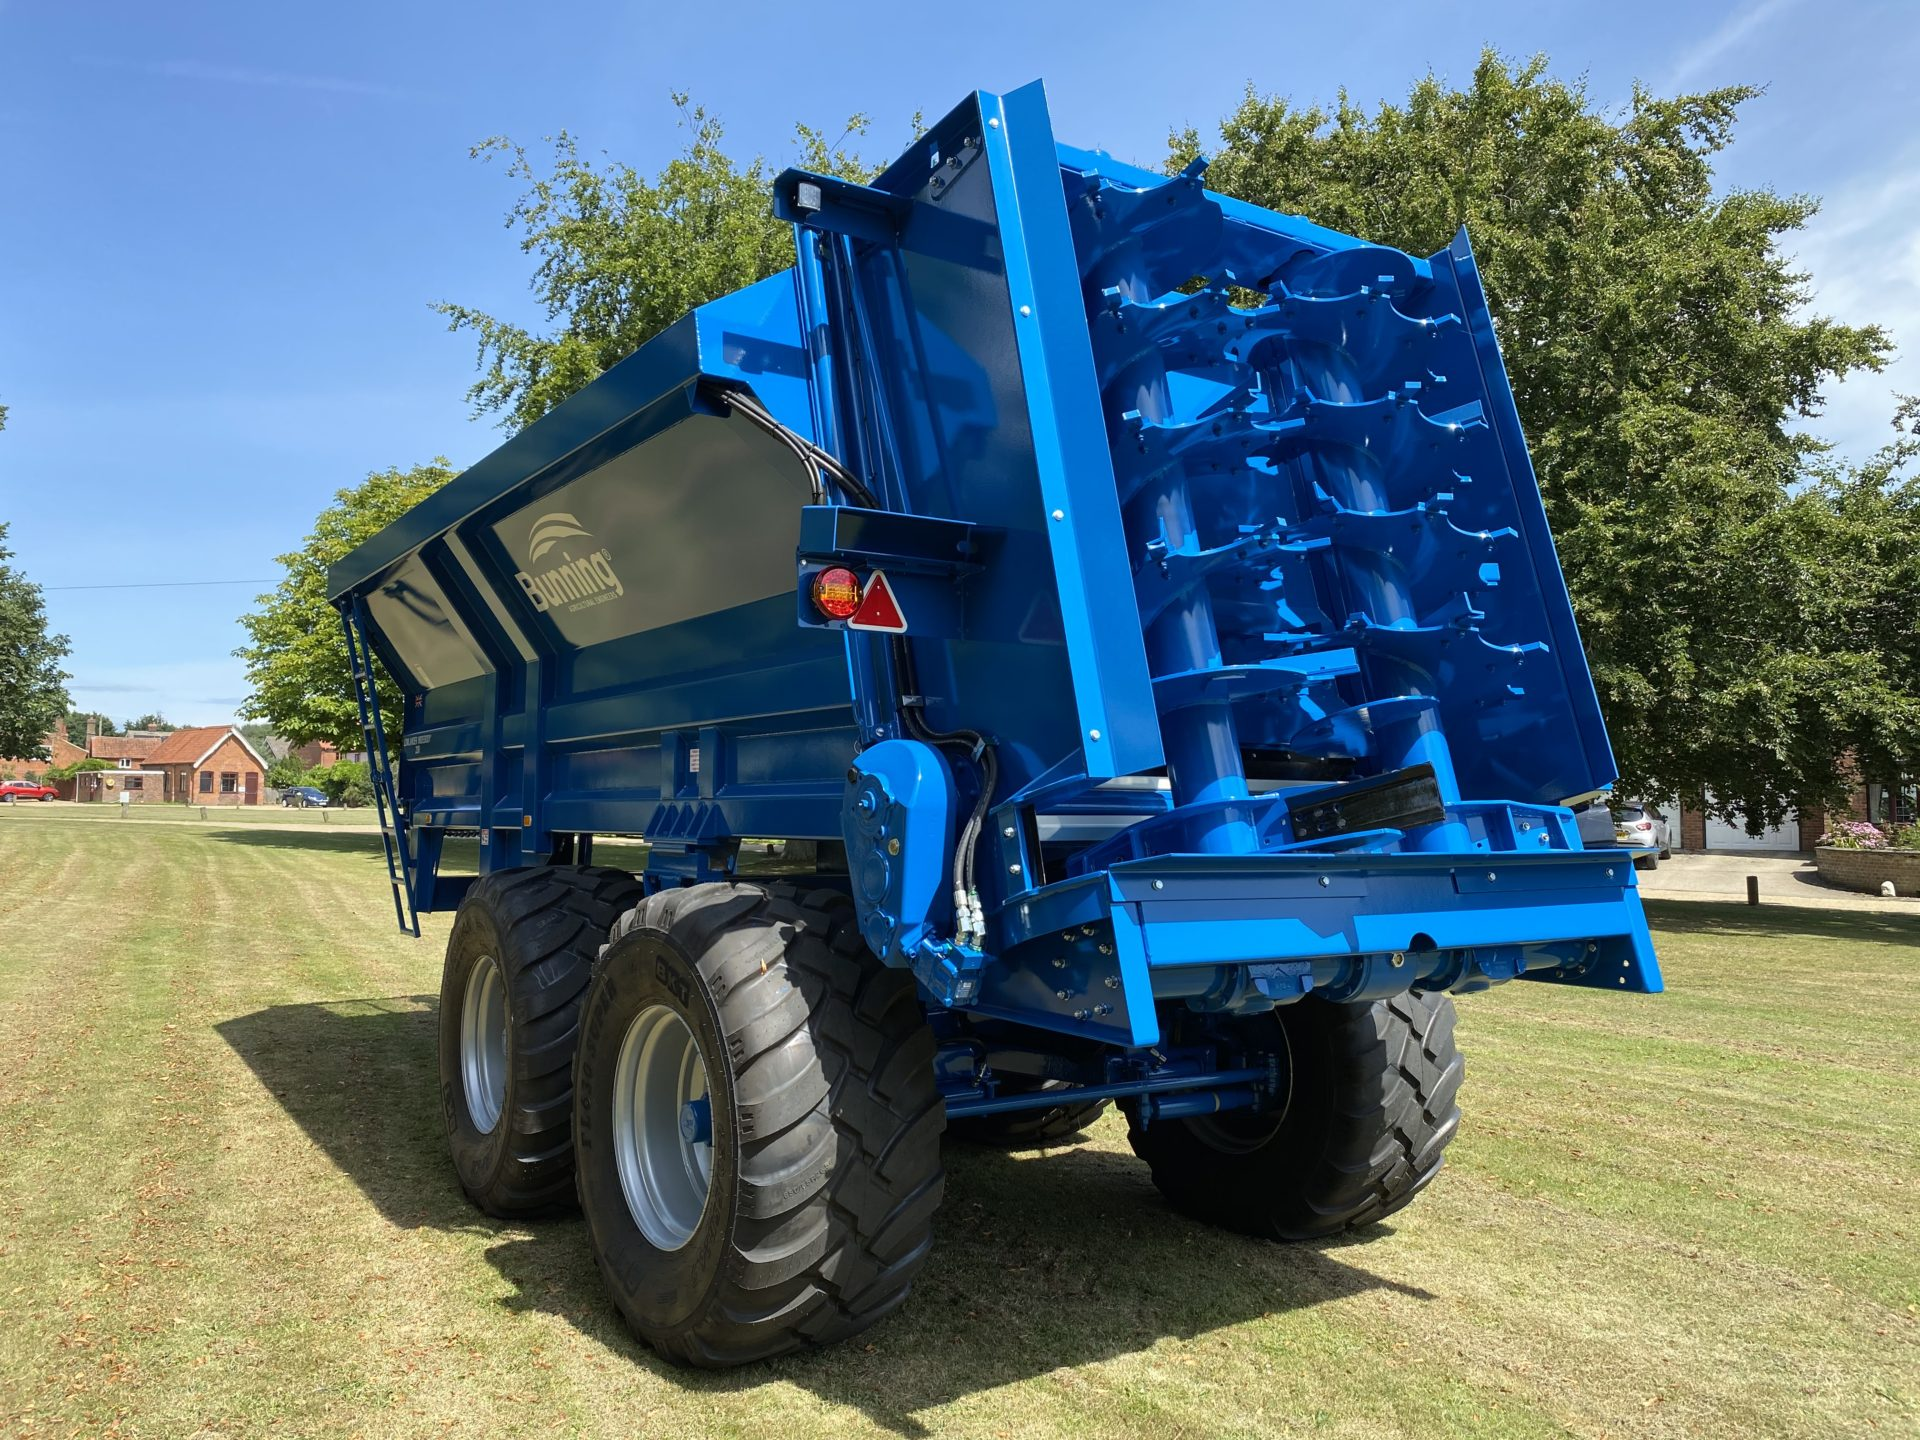 Lowlander 230 TVA (UK) Widebody with slurry door with indicator, large diameter bottom blades, sludge cake kit, built in extensions, rocking beam axles with rear steering, sprung drawbar, weigh cell ready, 650/55 R26.5 wheels